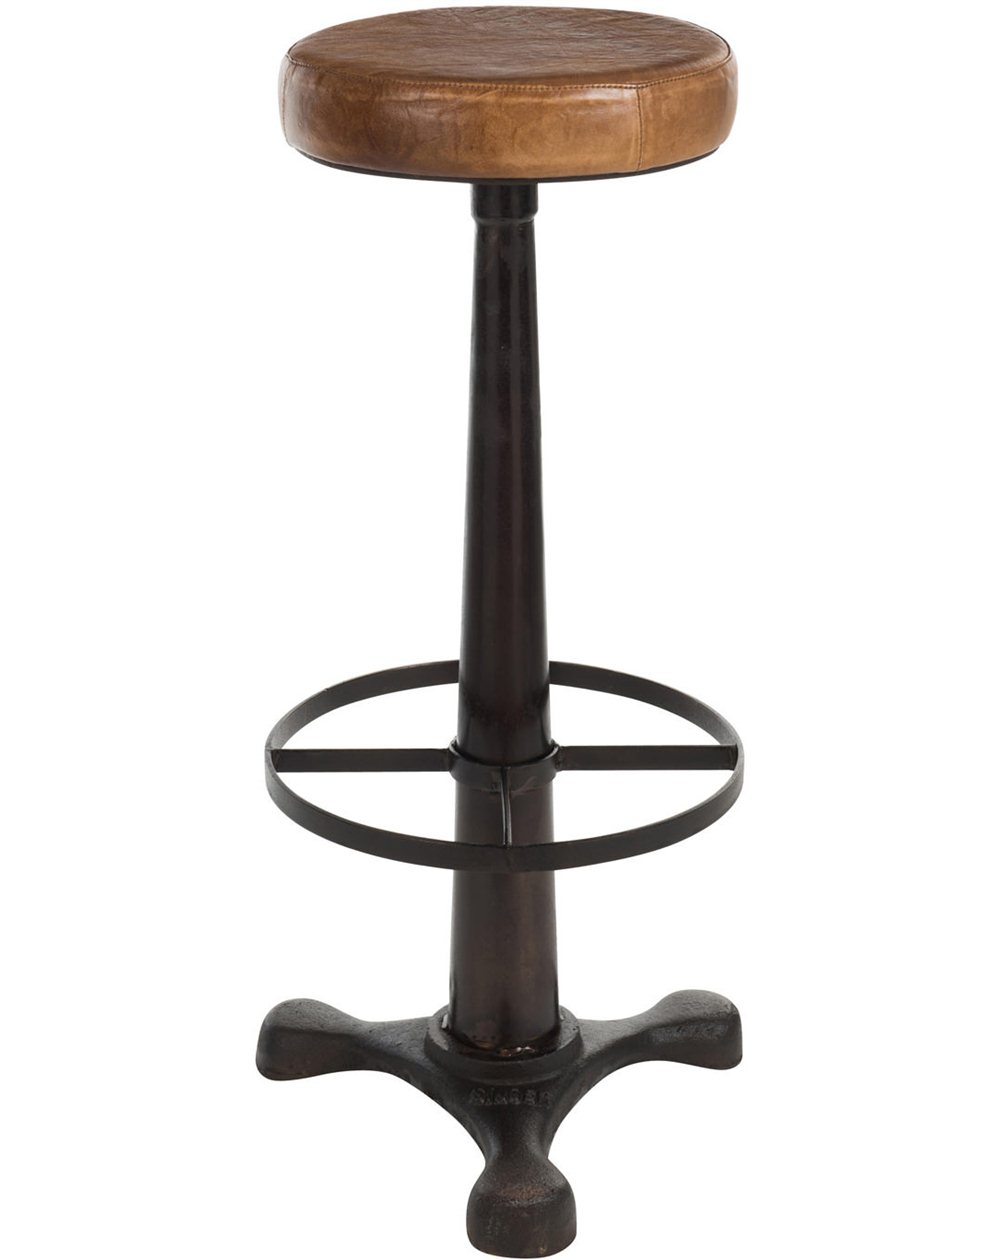 Chaise De Bar Marron Tabouret De Bar Cuir Marron Rétro Réf 30022045